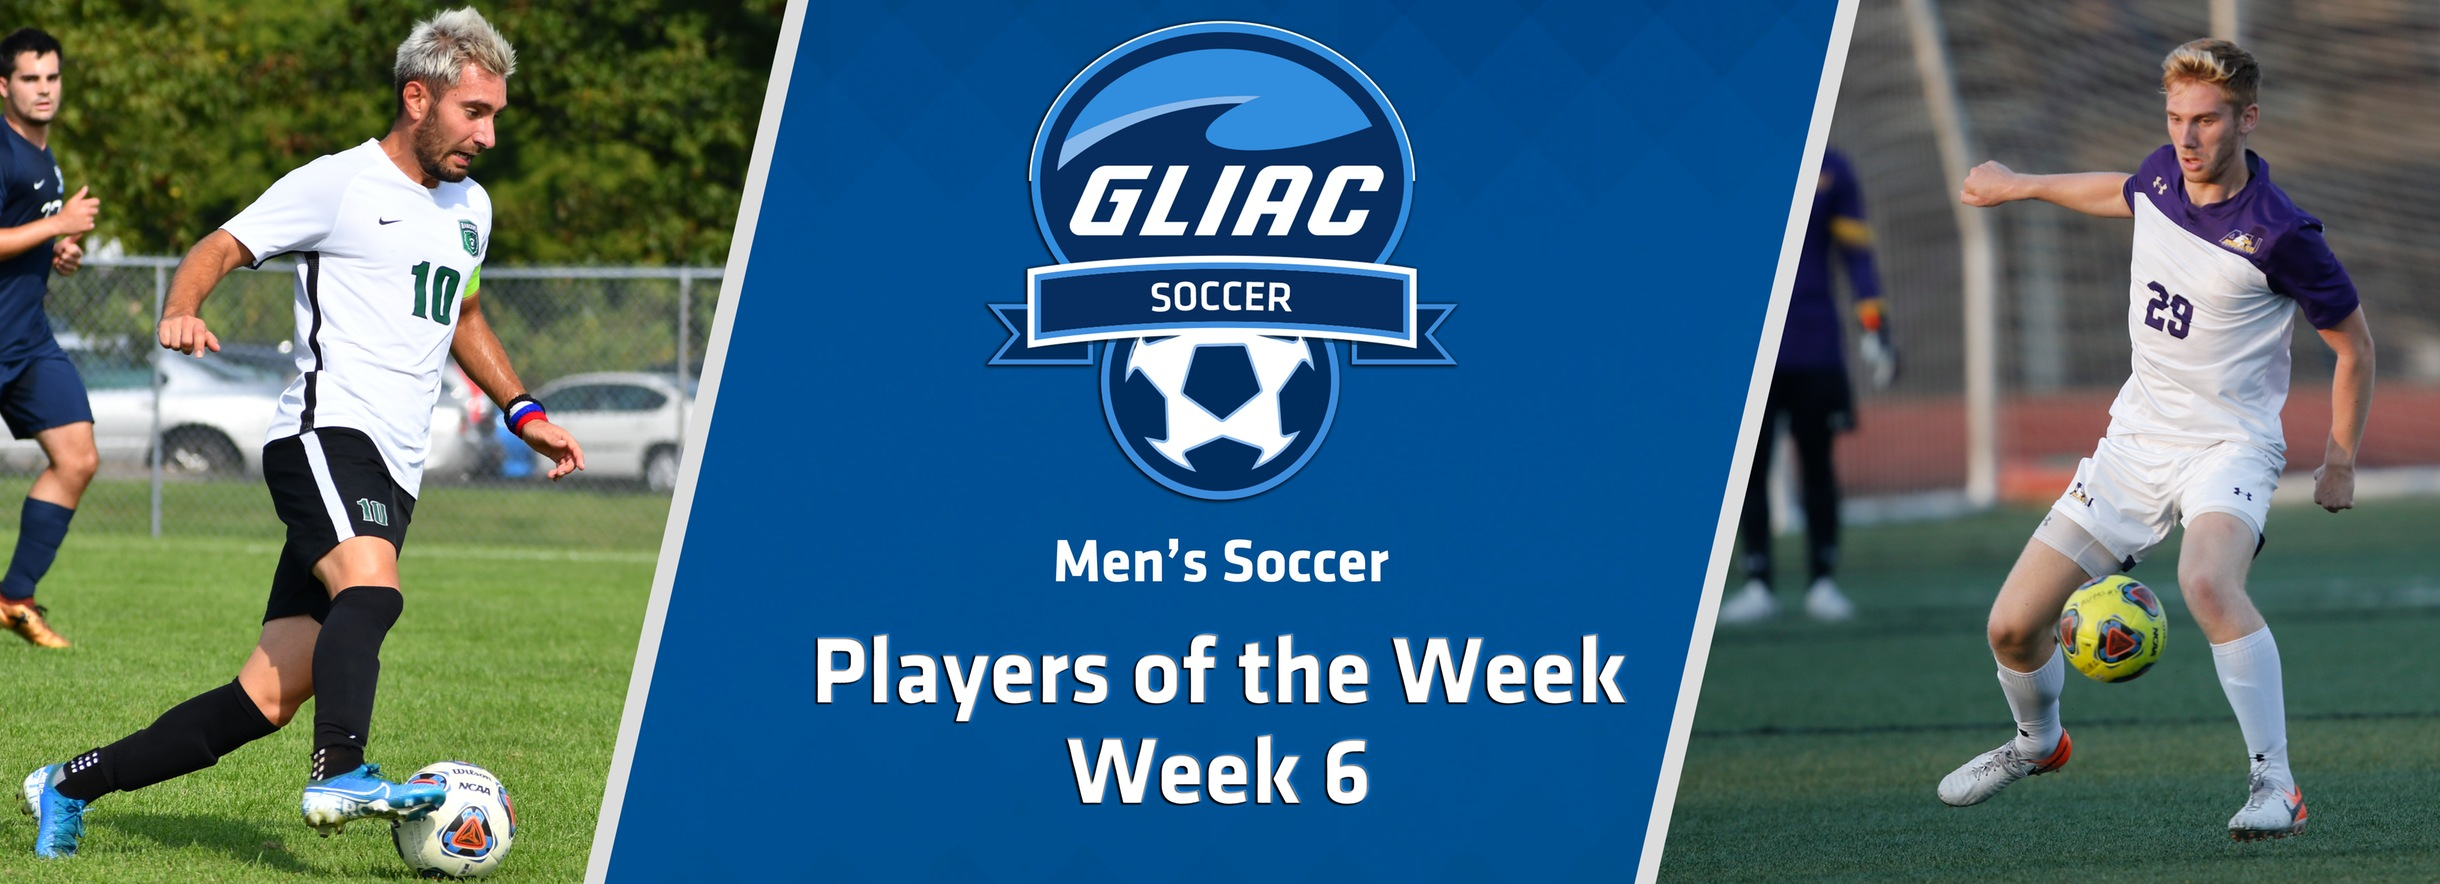 UWP's Prpa and AU's Renner Earn GLIAC Men's Soccer Weekly Awards